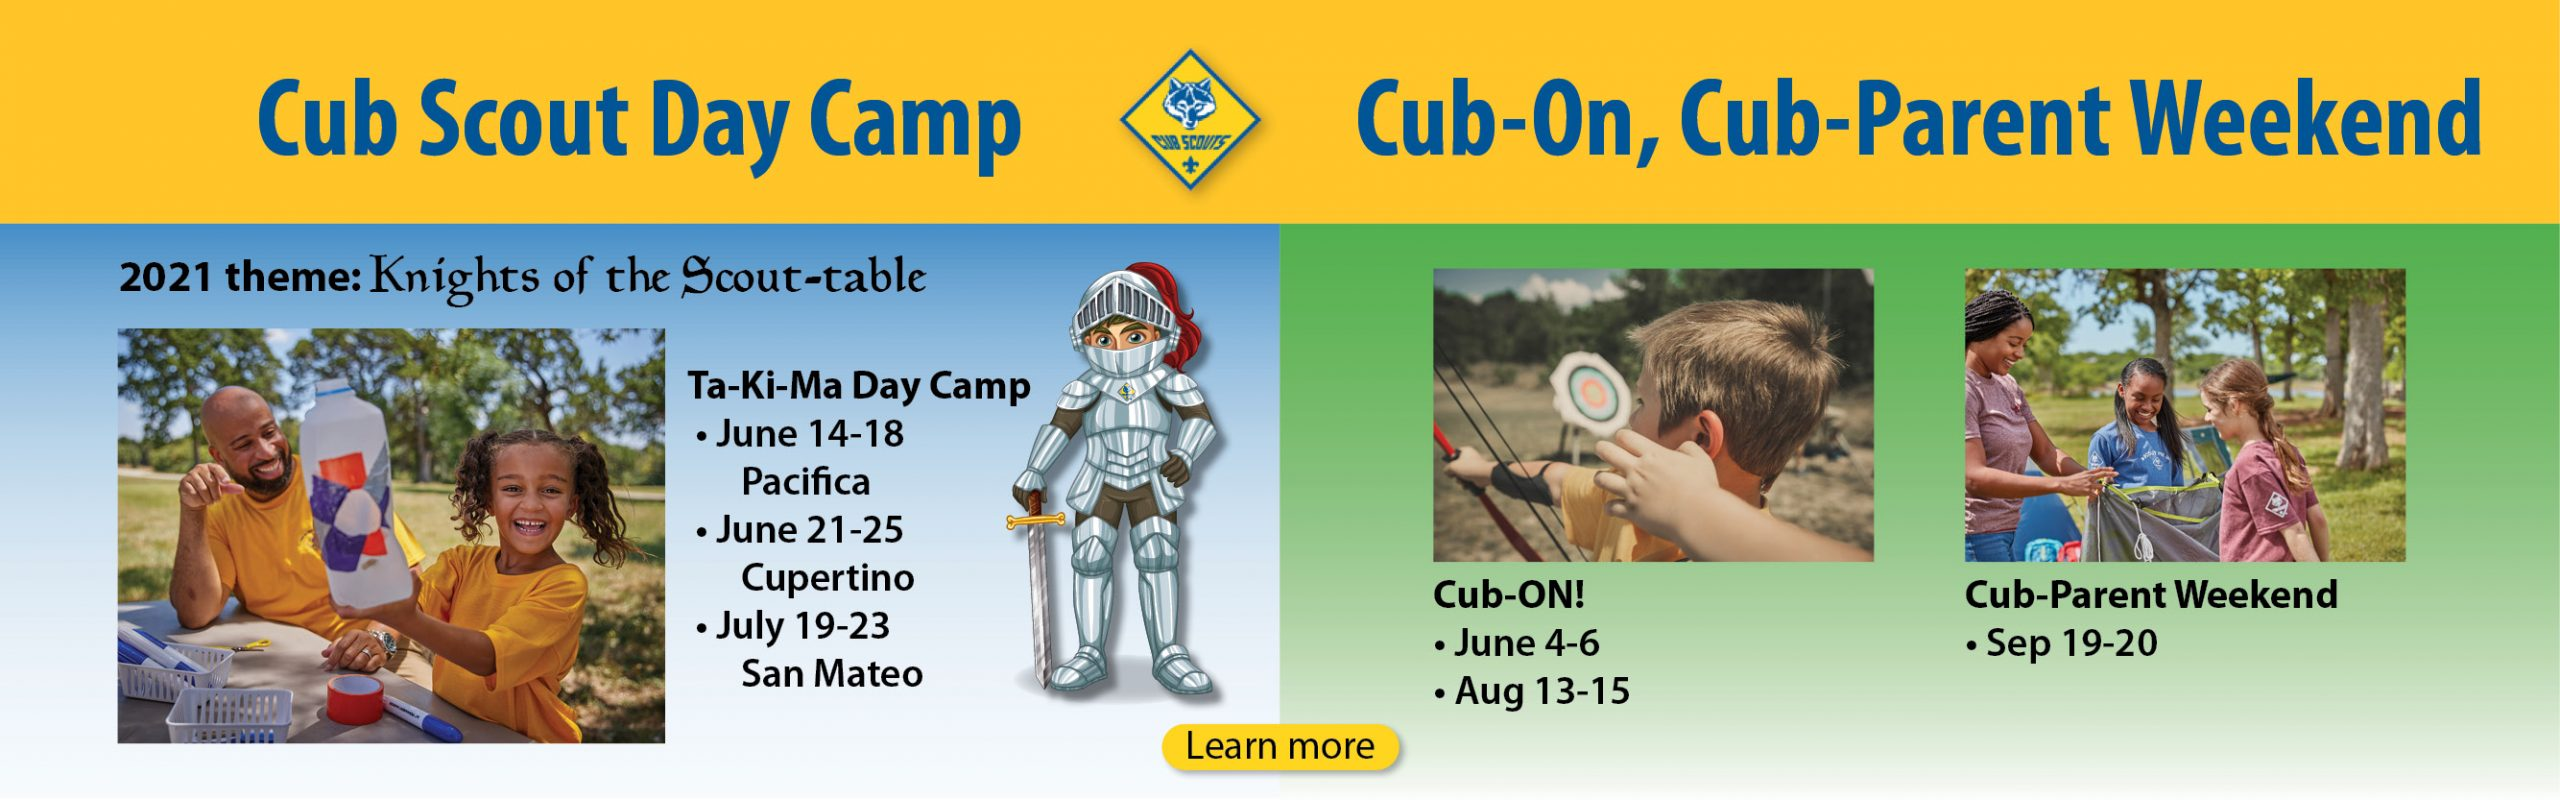 Day Camp, Cub-On, Cub-Parent Weekend banner